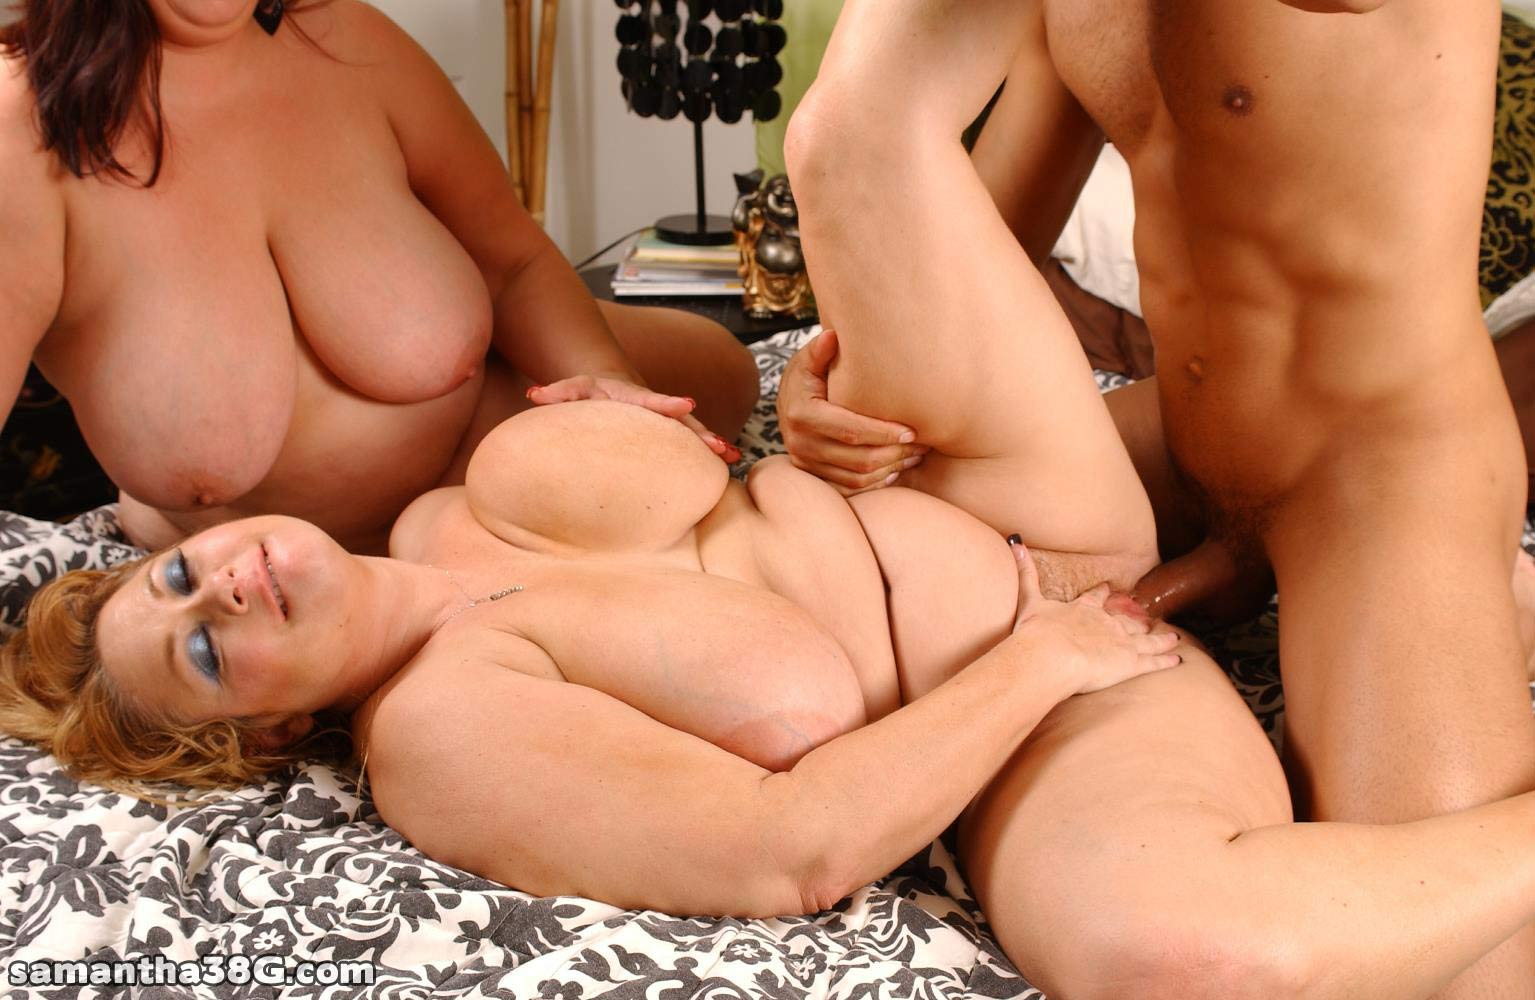 Remarkable, very big tits fat sex not simple